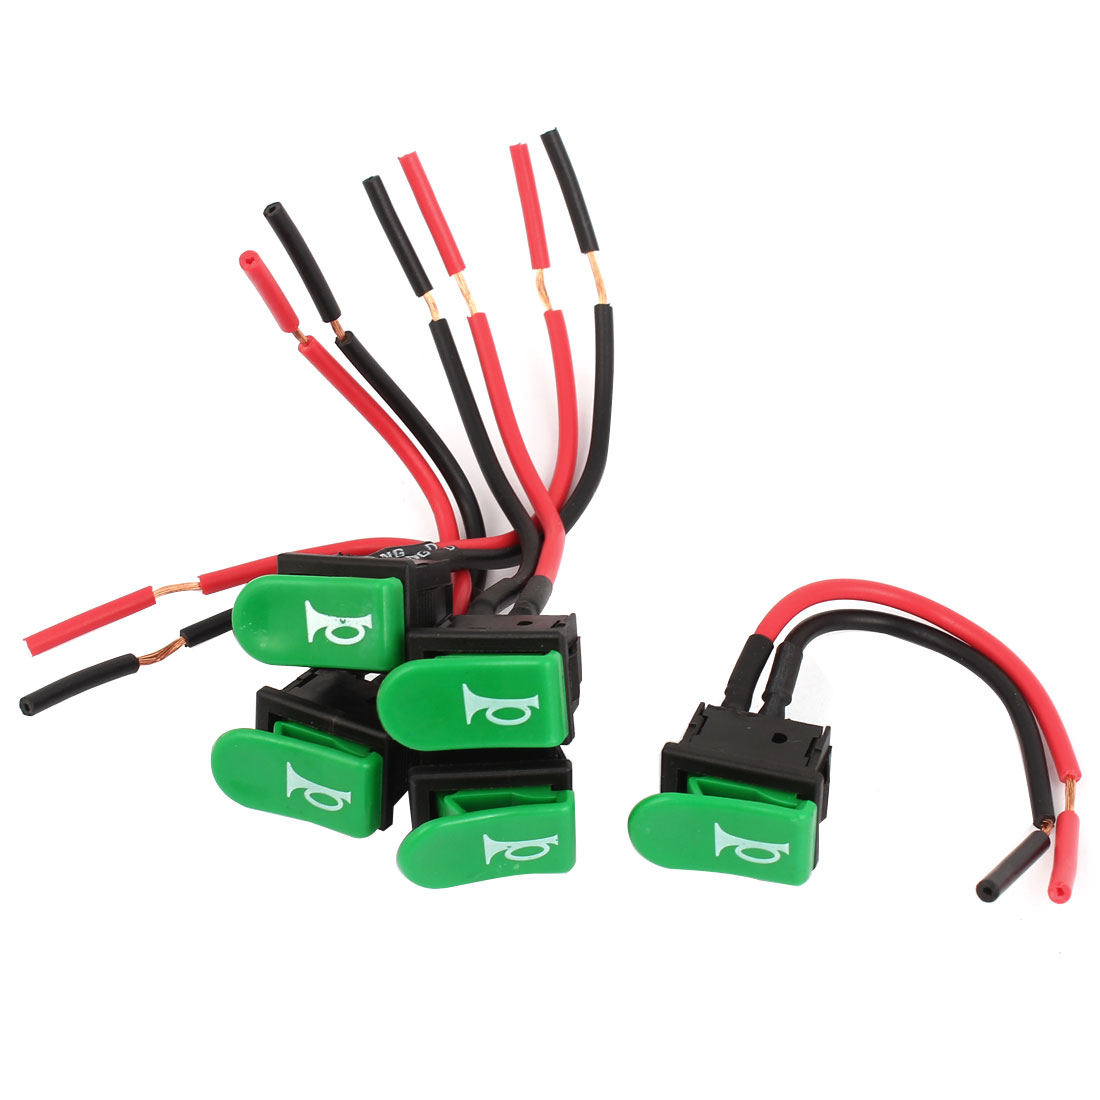 5 Pcs Momentary SPST Green Horn Button Boat Rocker Switches w Leads DC12V